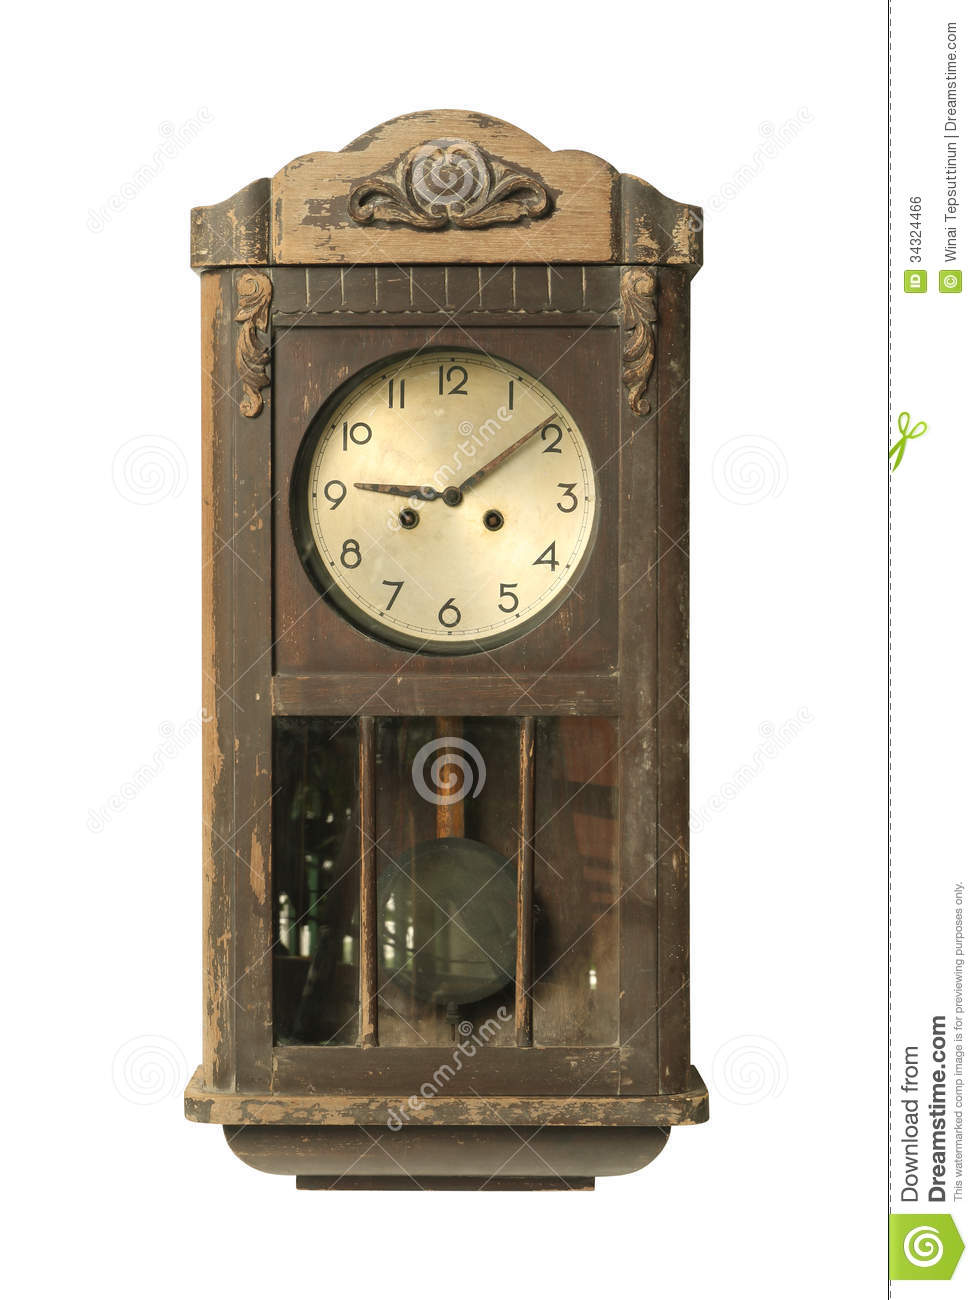 Vintage Wall Clock Stock Photo Image Of Ancient Isolated 34324466